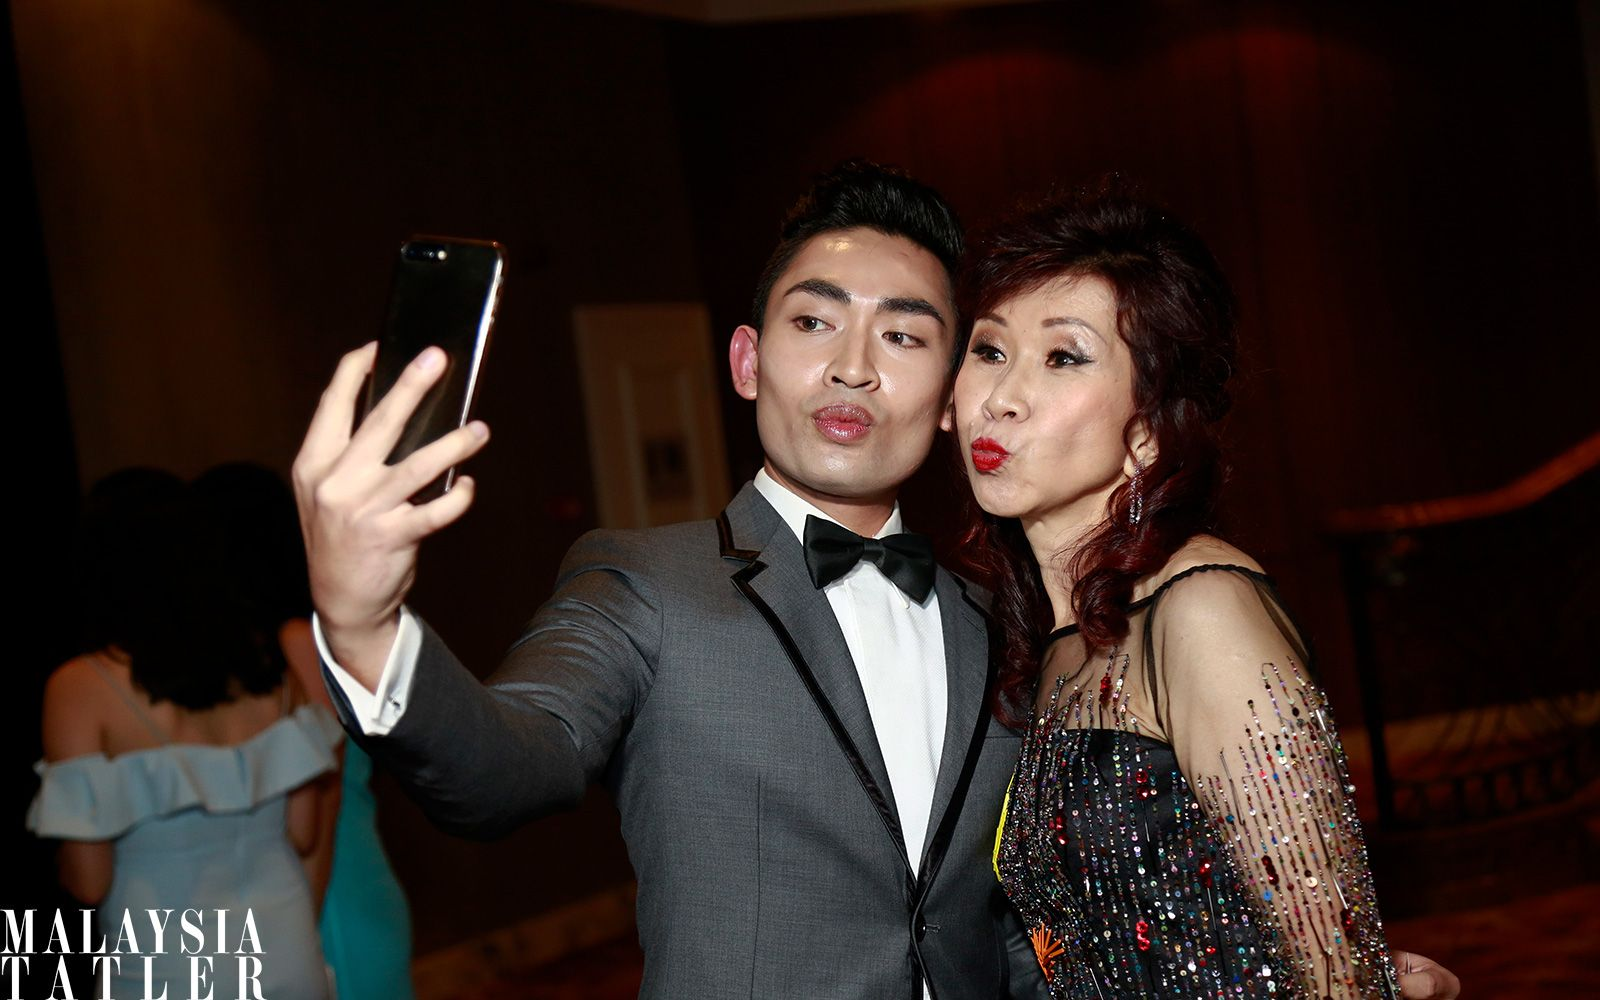 Aliff Hazwan and Florence Fang